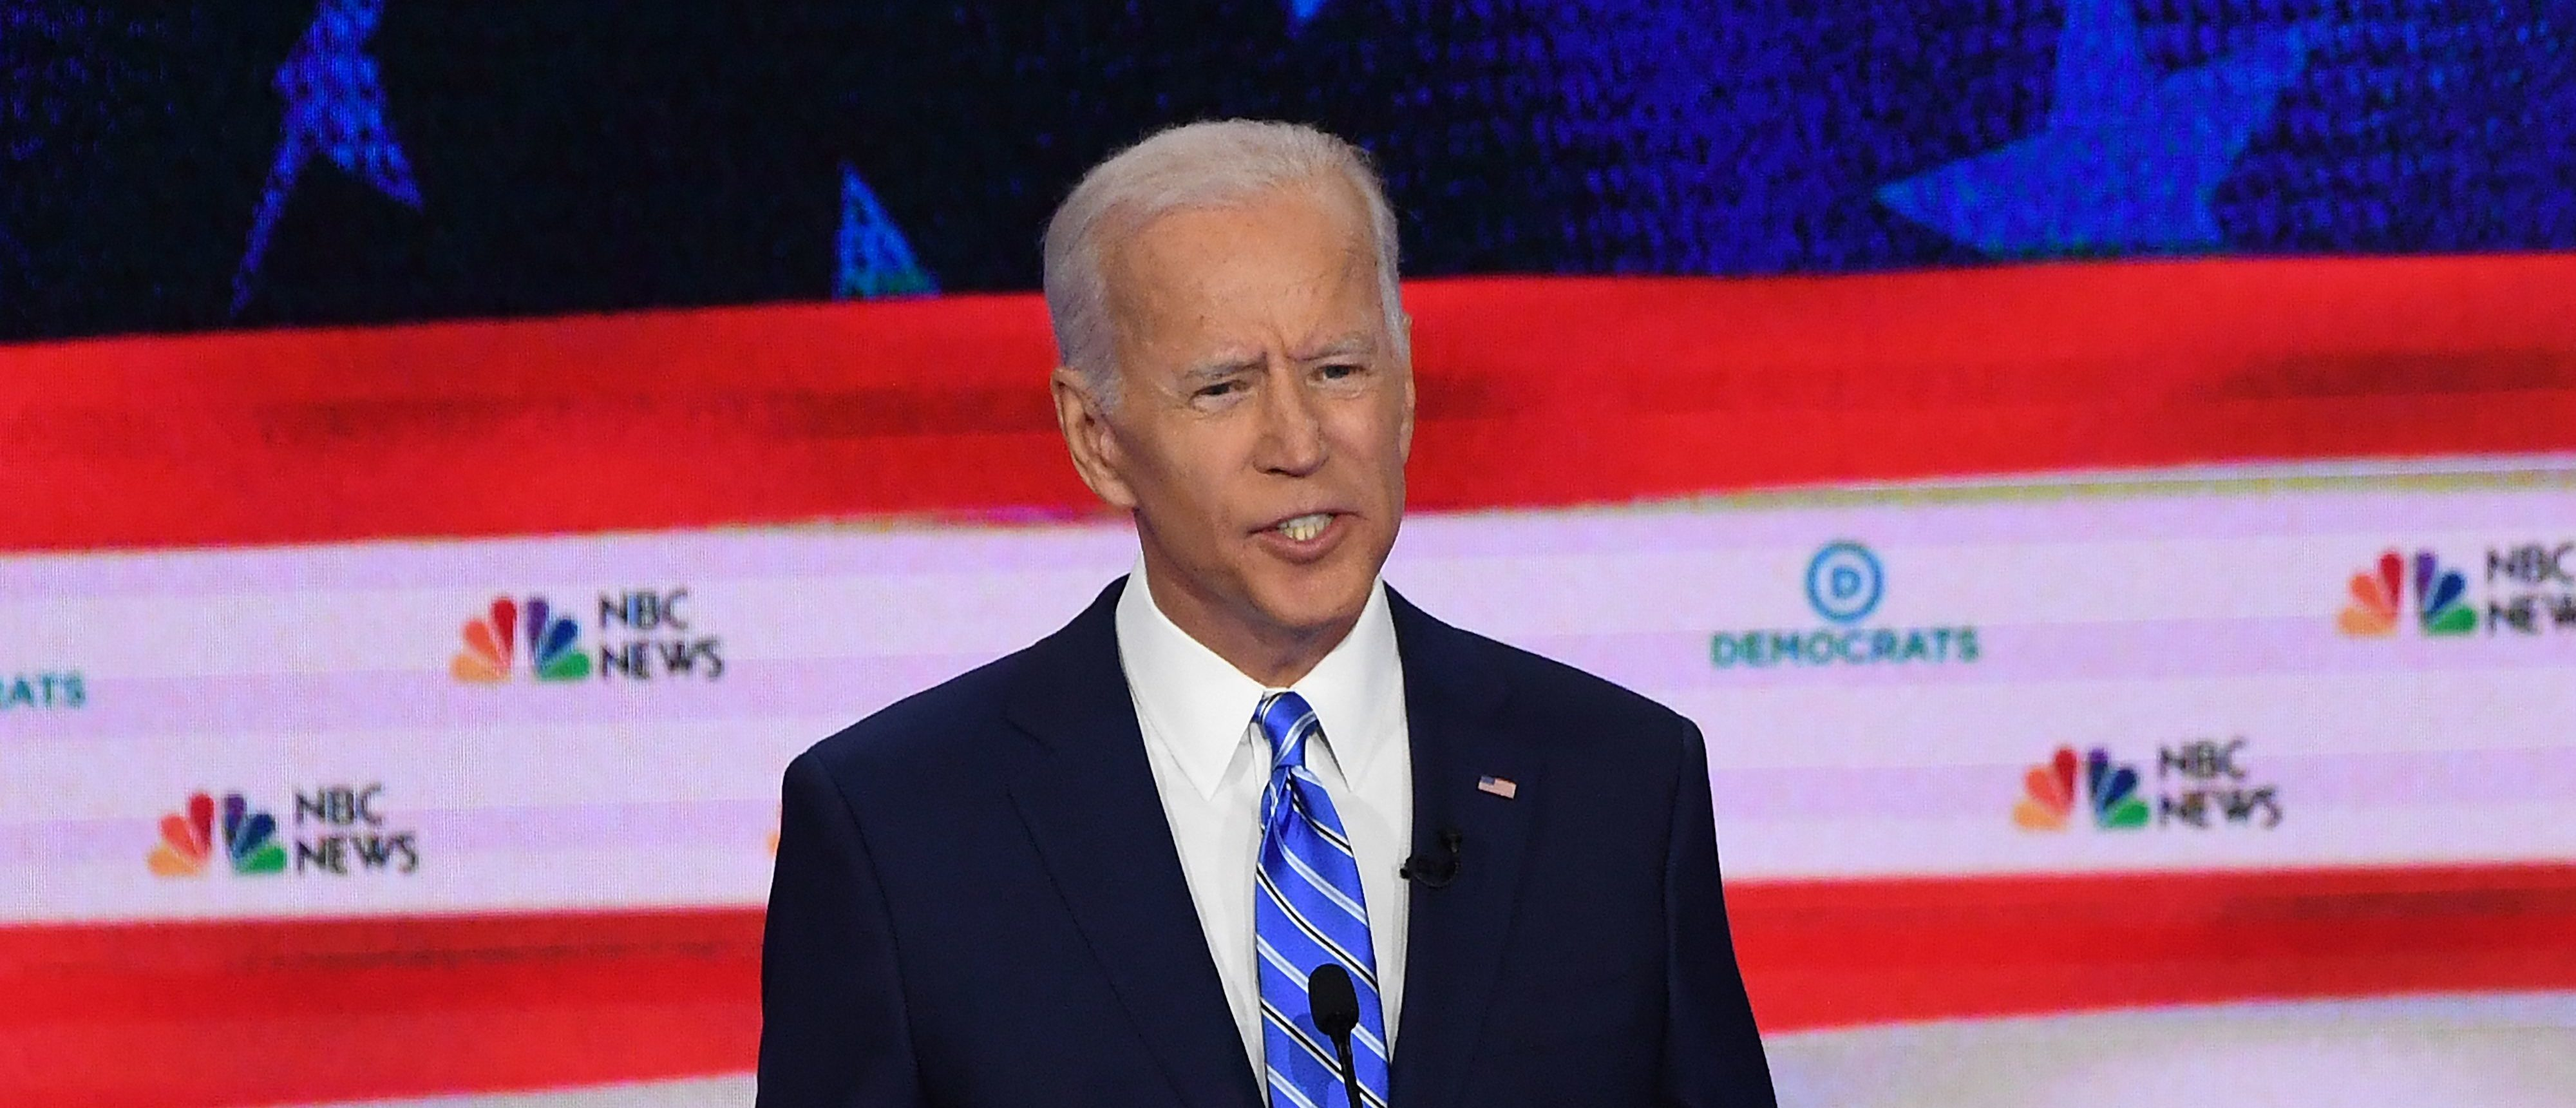 Democratic presidential hopeful former US Vice President Joseph R. Biden speaks during the second Democratic primary debate of the 2020 presidential campaign season hosted by NBC News at the Adrienne Arsht Center for the Performing Arts in Miami, Florida, June 27, 2019. ( SAUL LOEB/AFP/Getty Images)